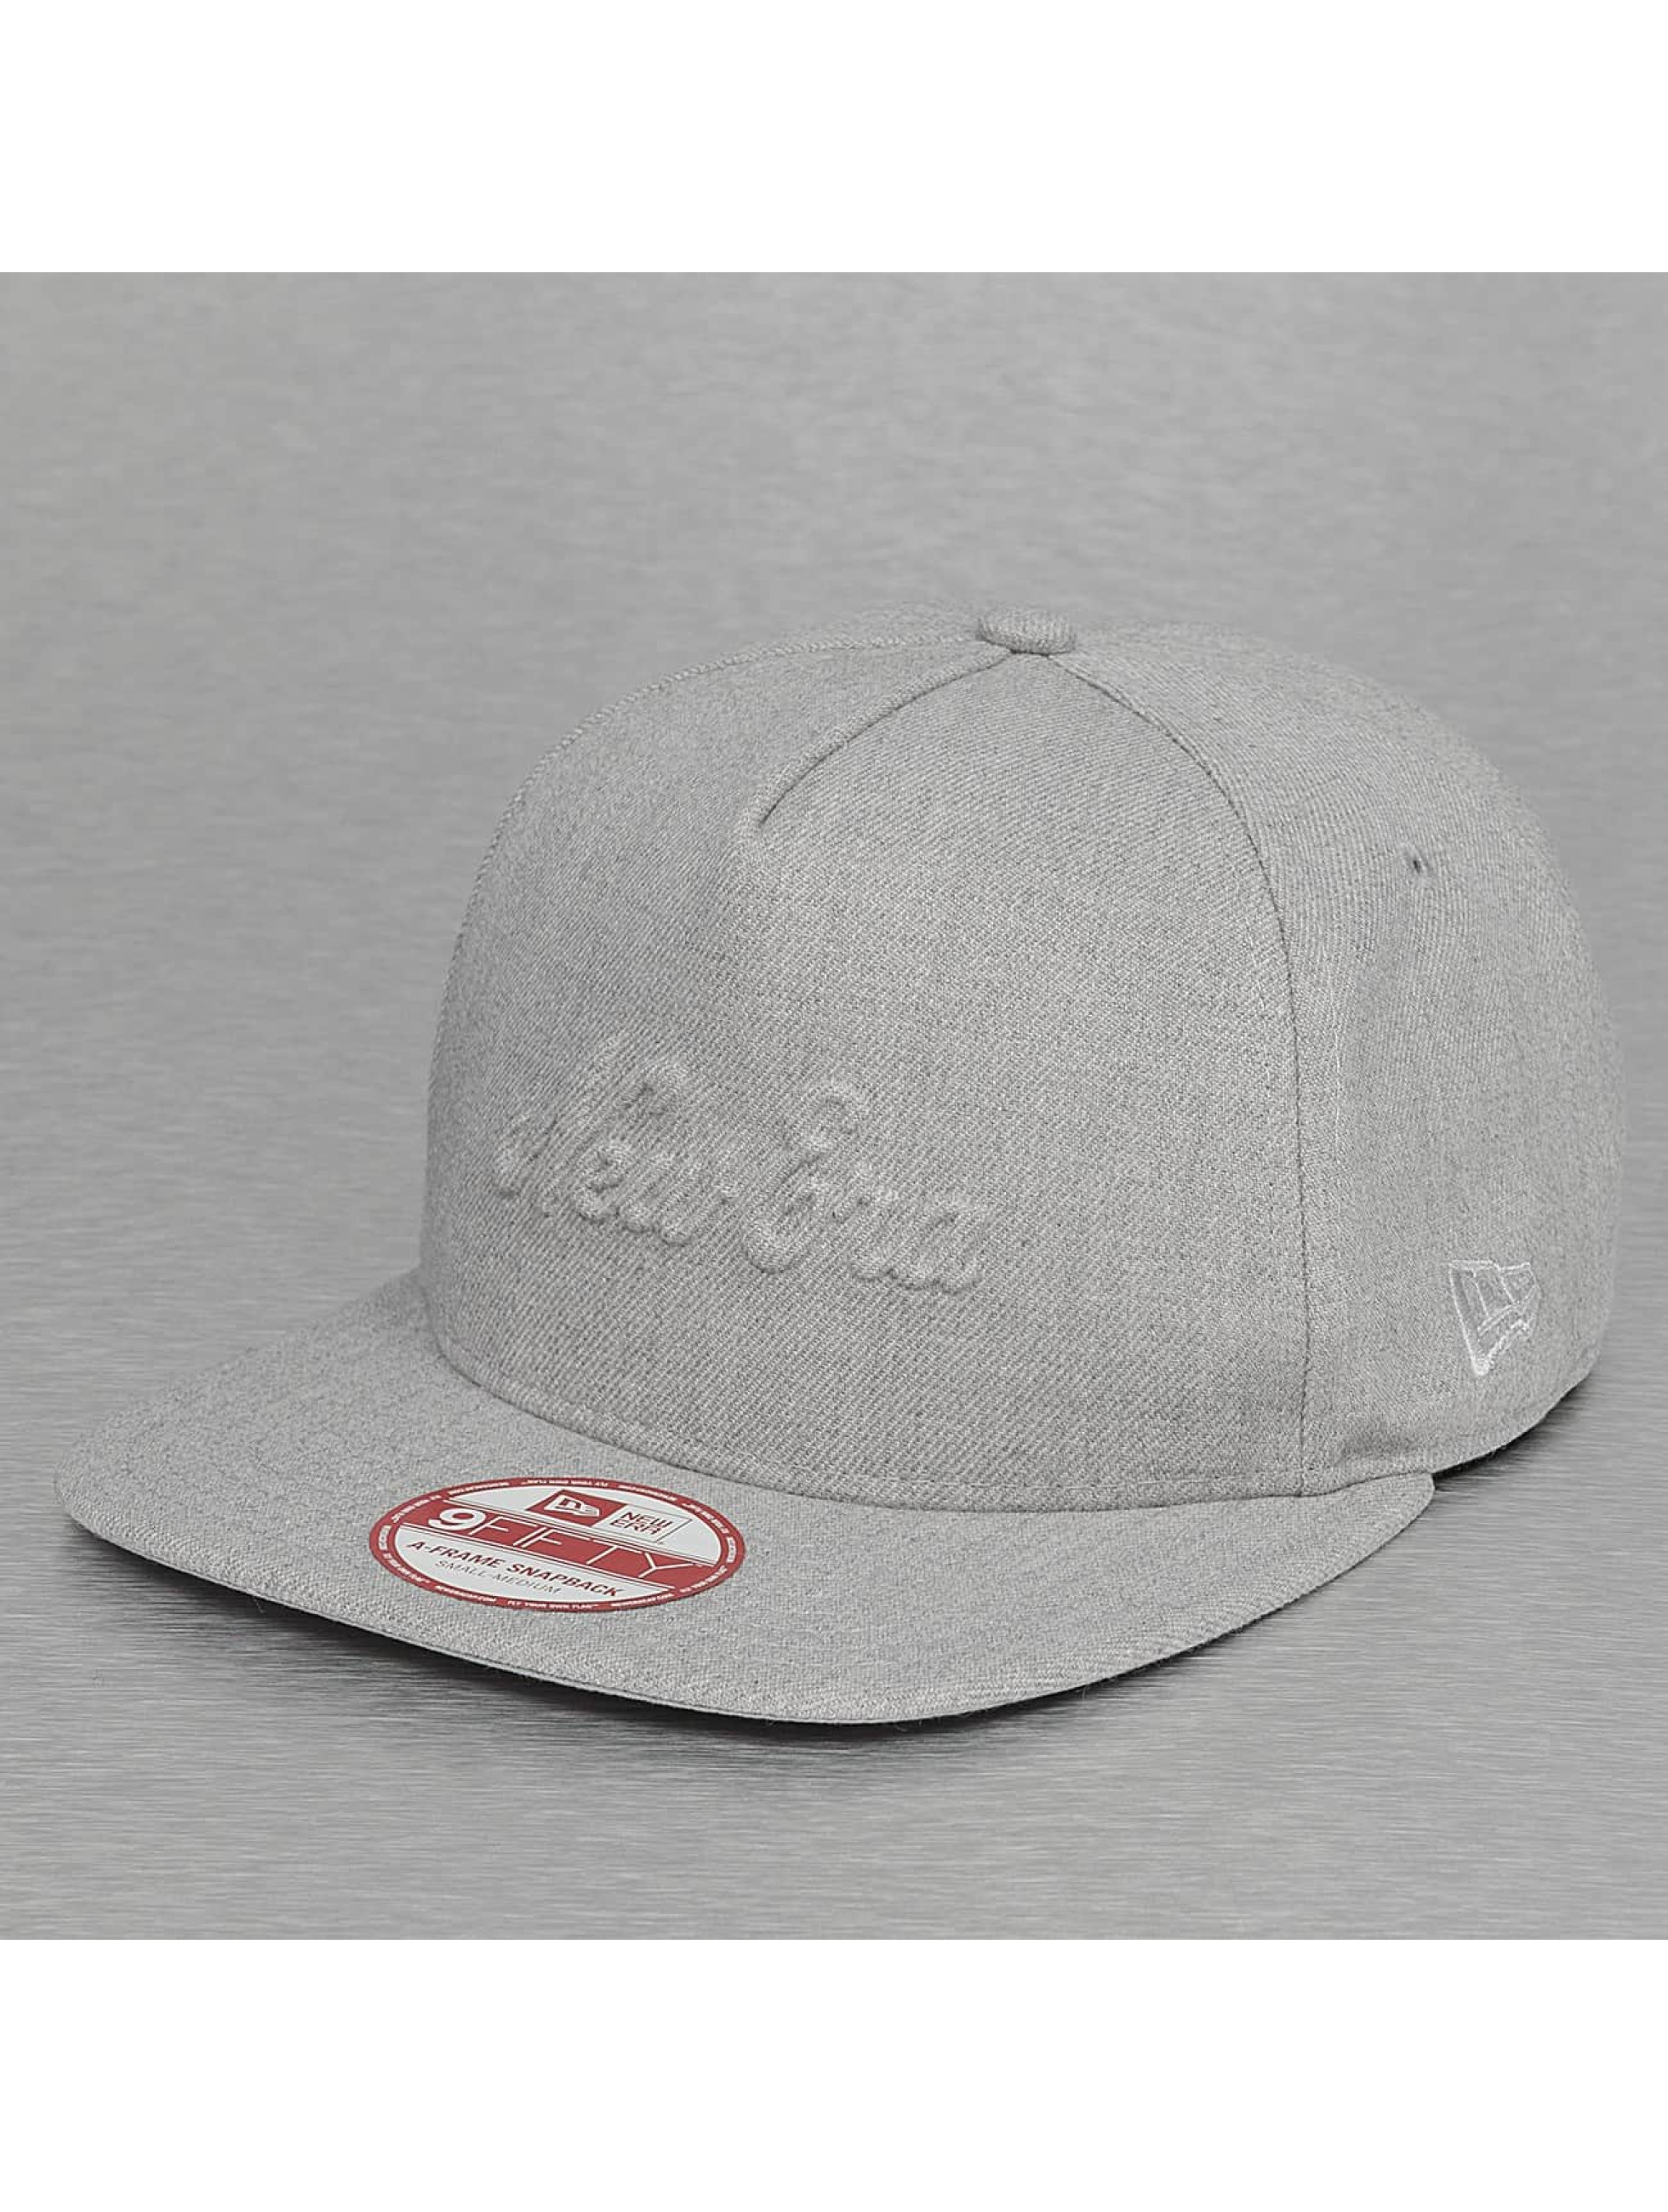 New Era Casquette Snapback & Strapback Heather Gel Fill gris